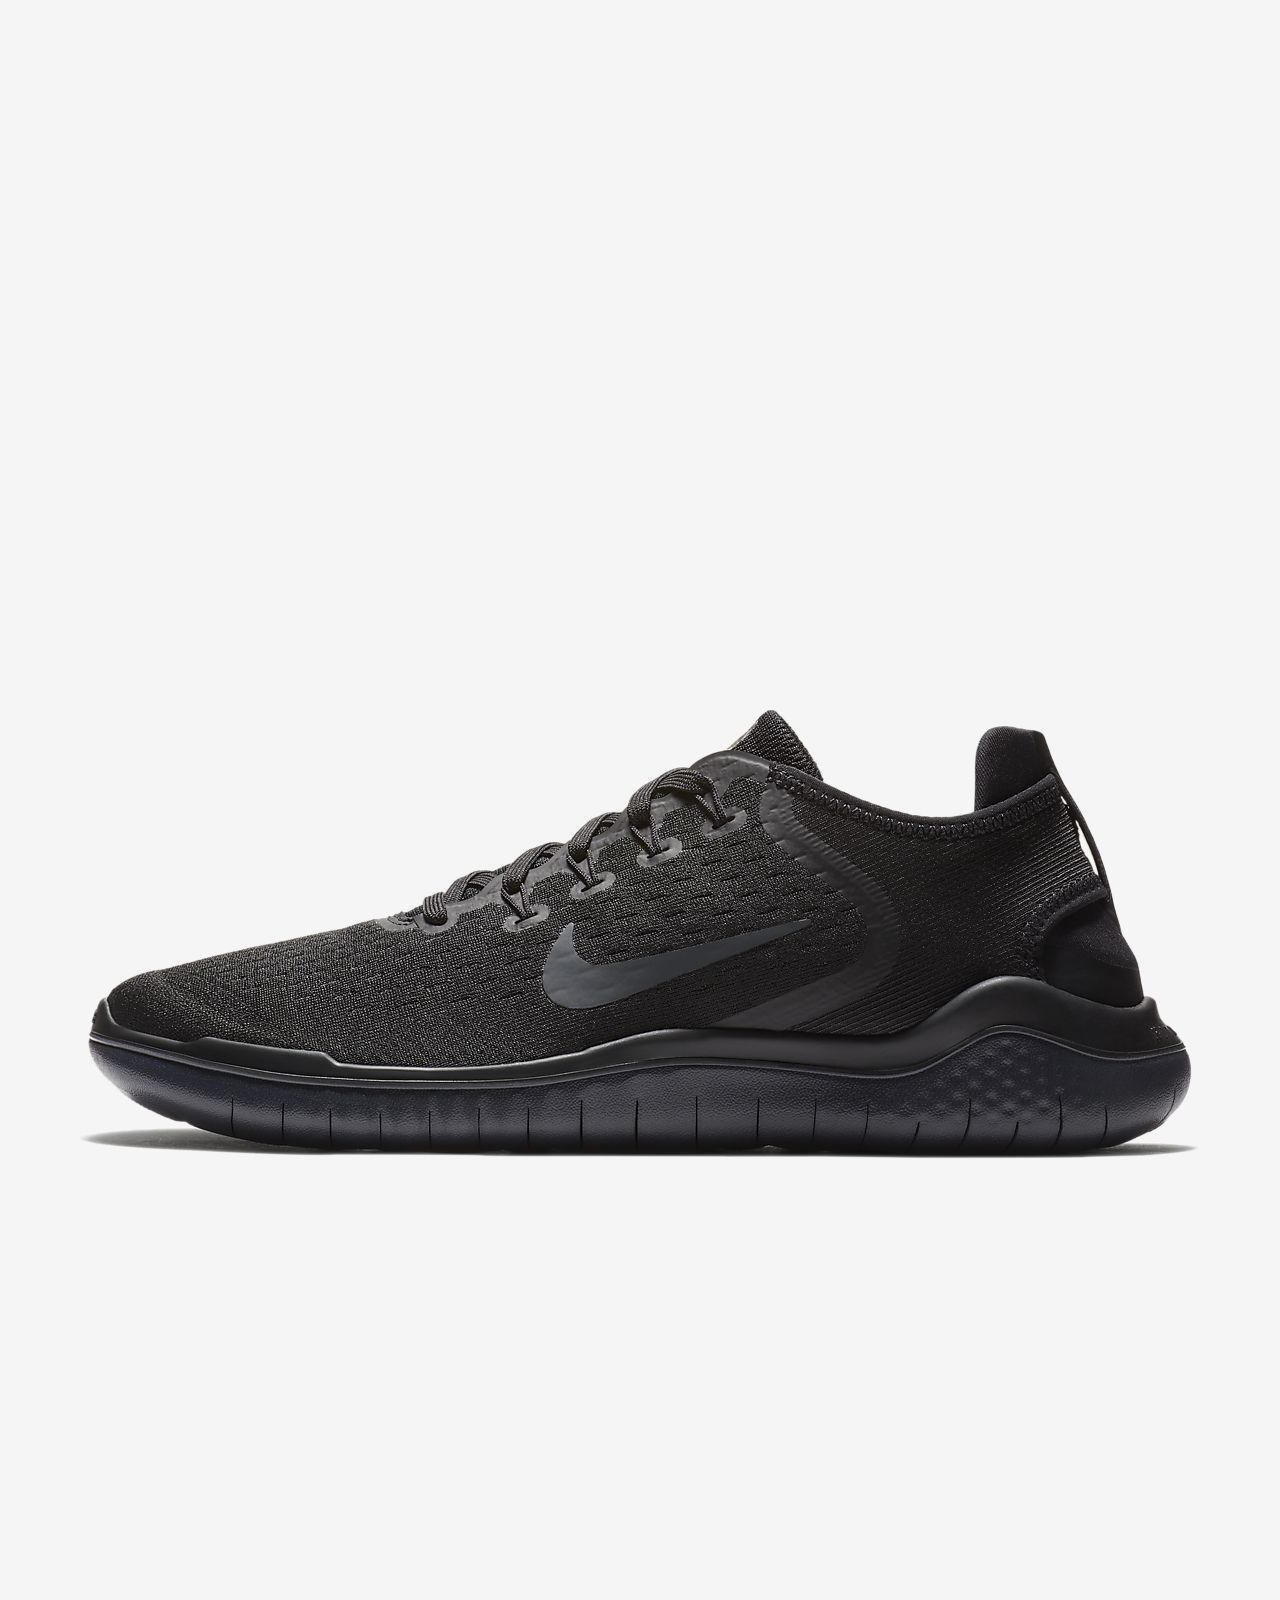 big sale 9dc9b 04040 ... Nike Free RN 2018 Men s Running Shoe